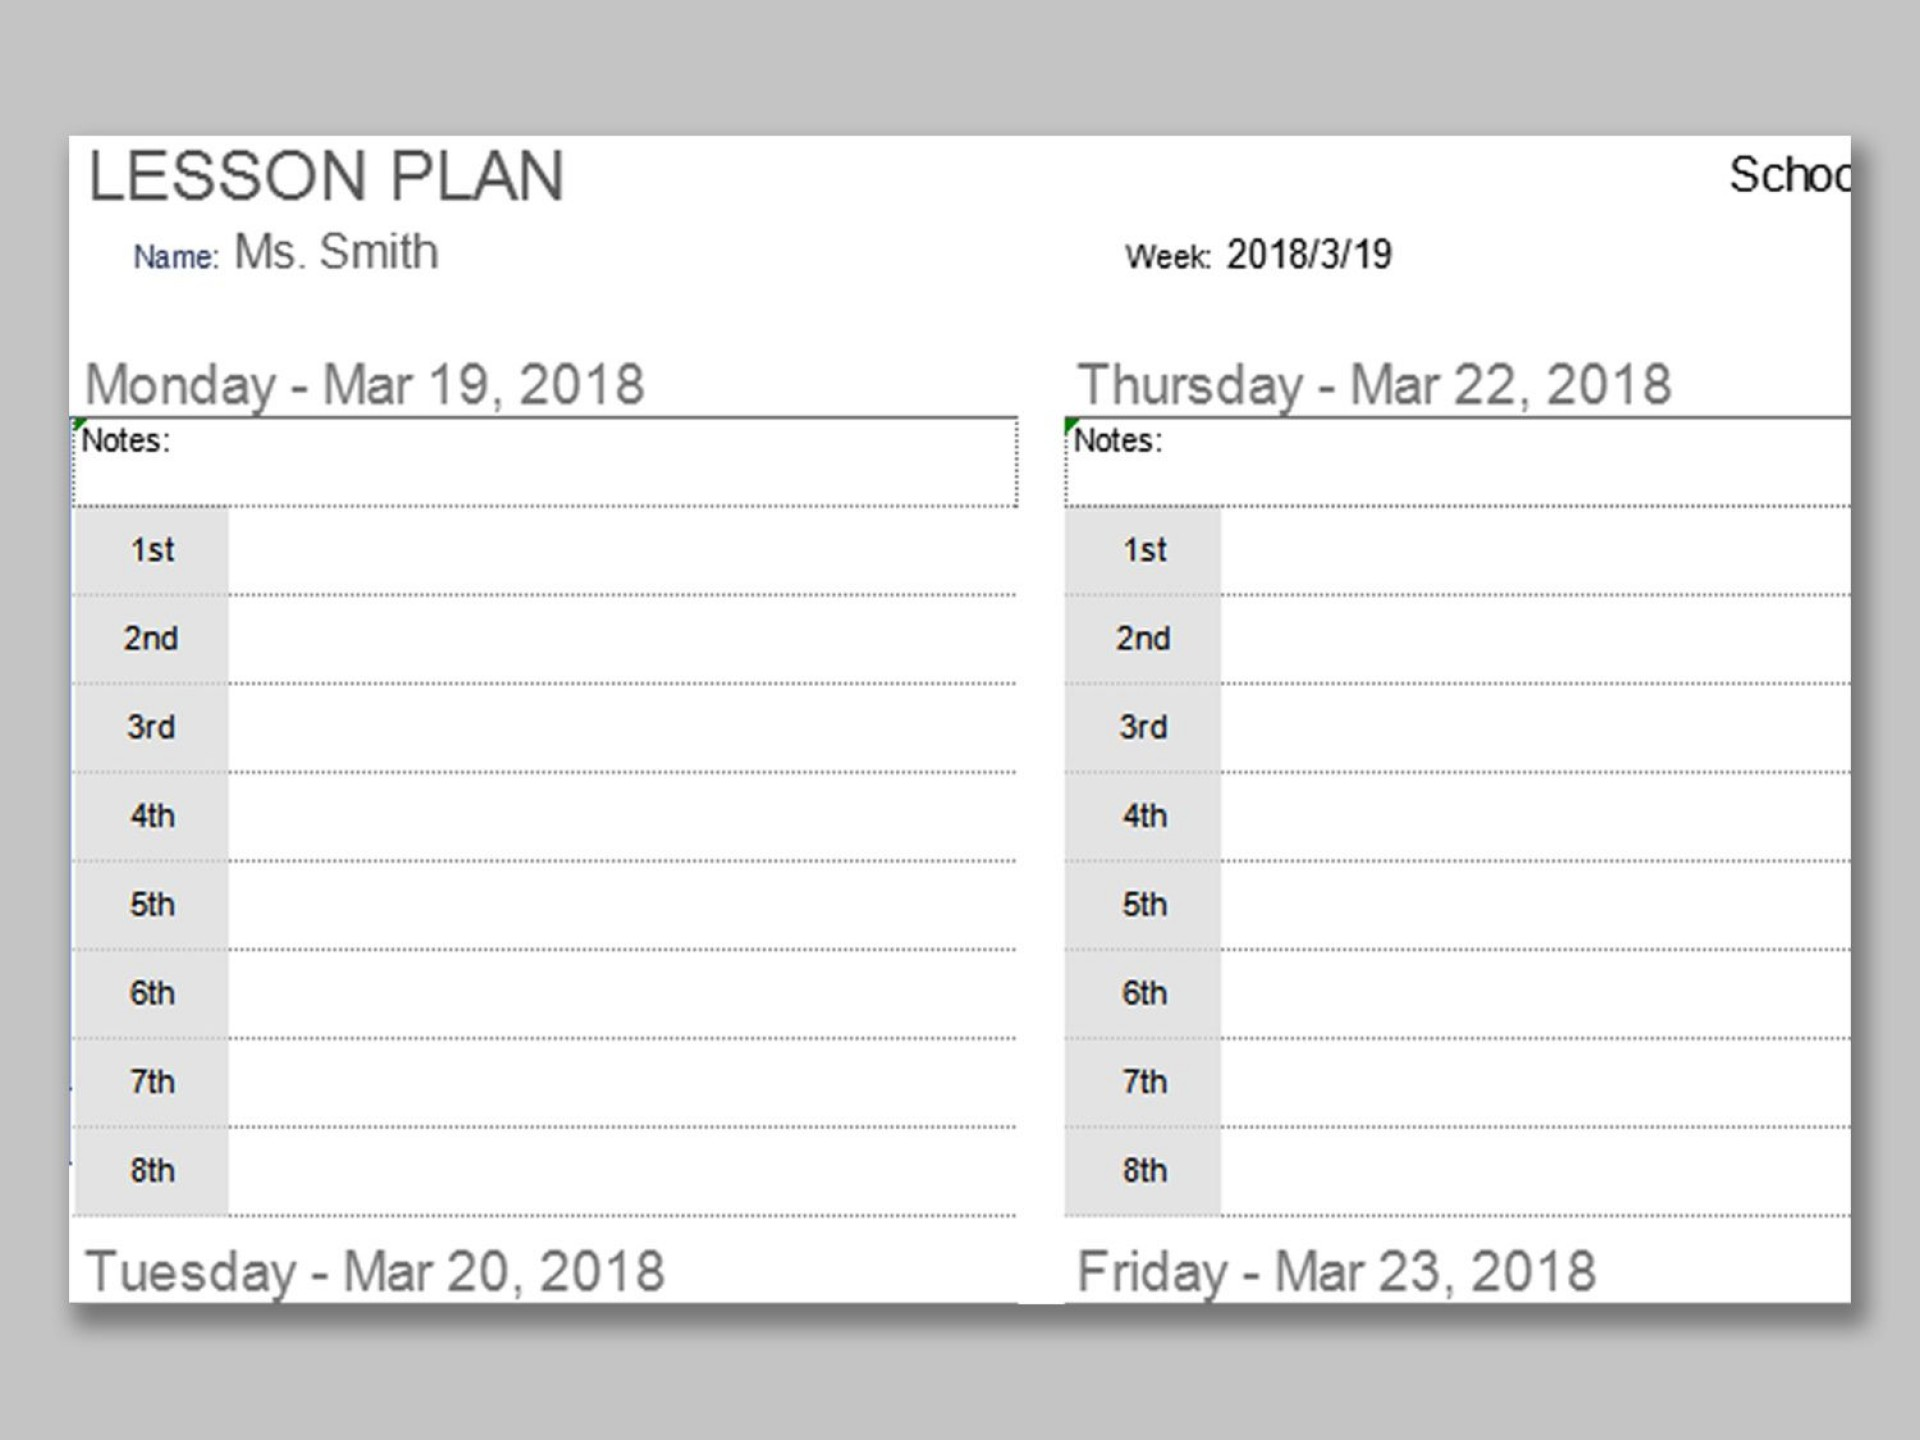 000 Unforgettable Lesson Plan Template Free Concept  Weekly Printable Editable Preschool Format1920